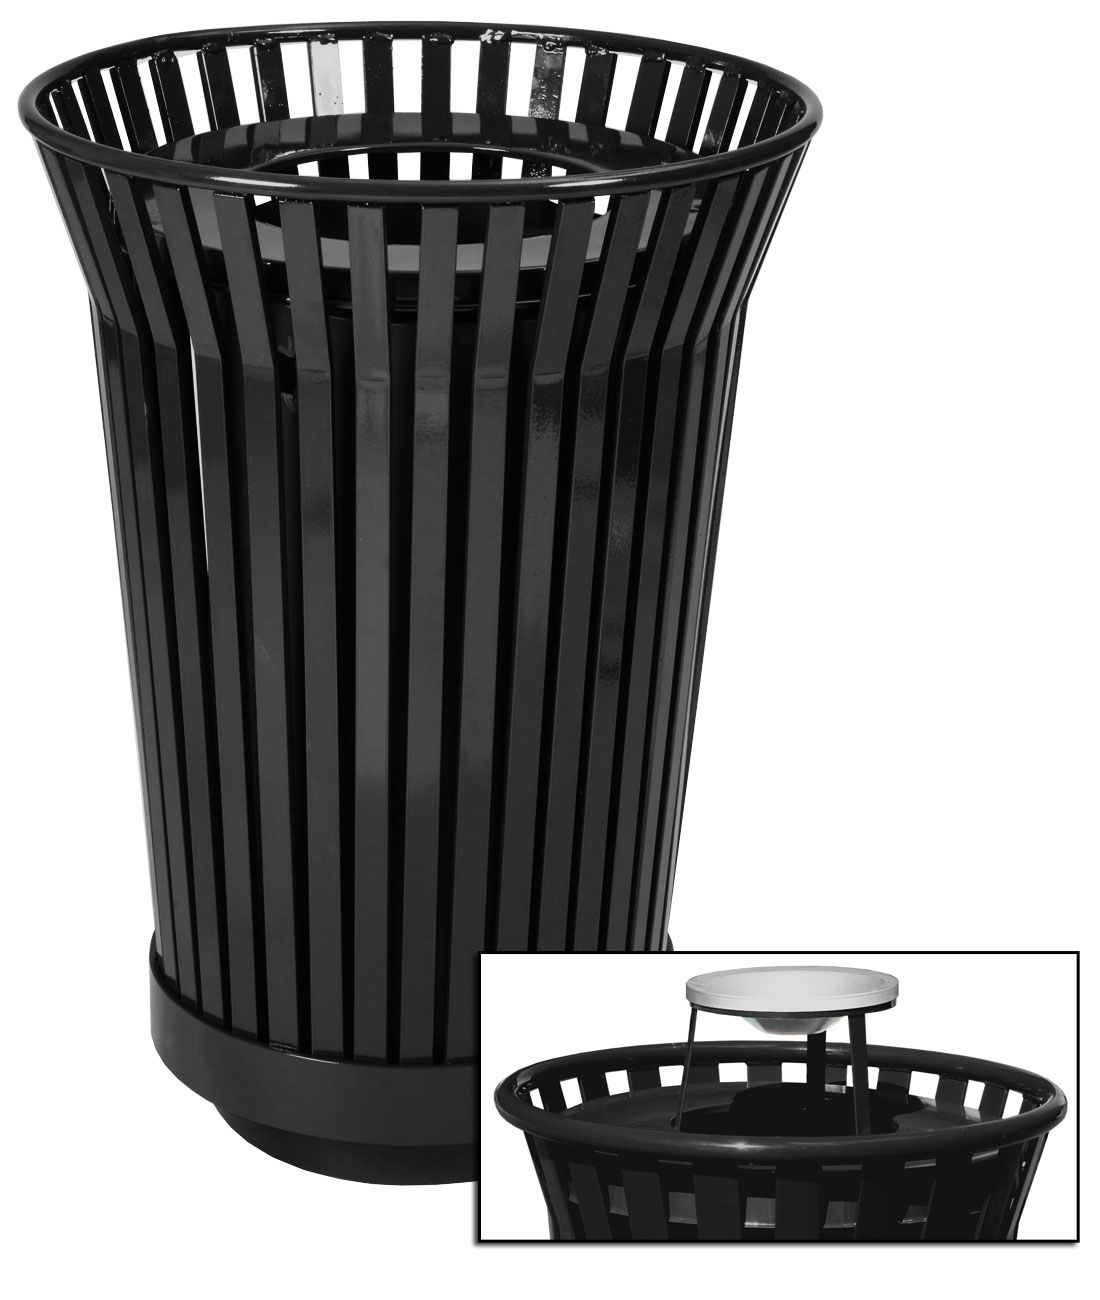 River City Series Waste Receptacles